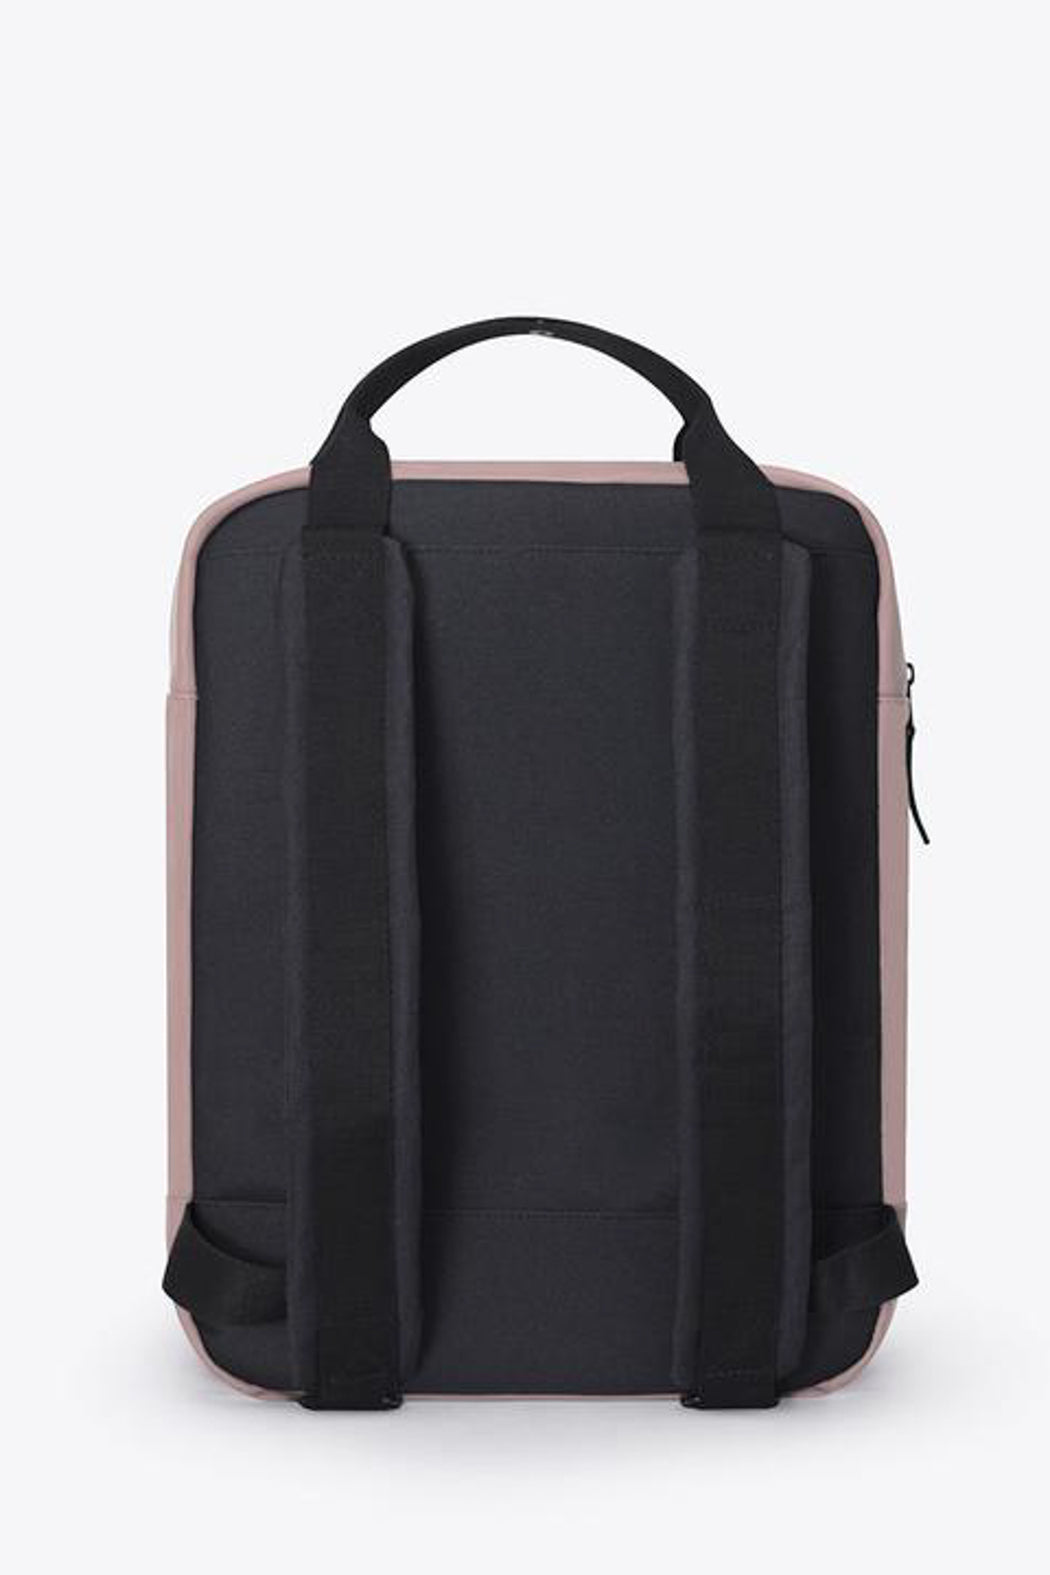 ISON Backpack lotus rose